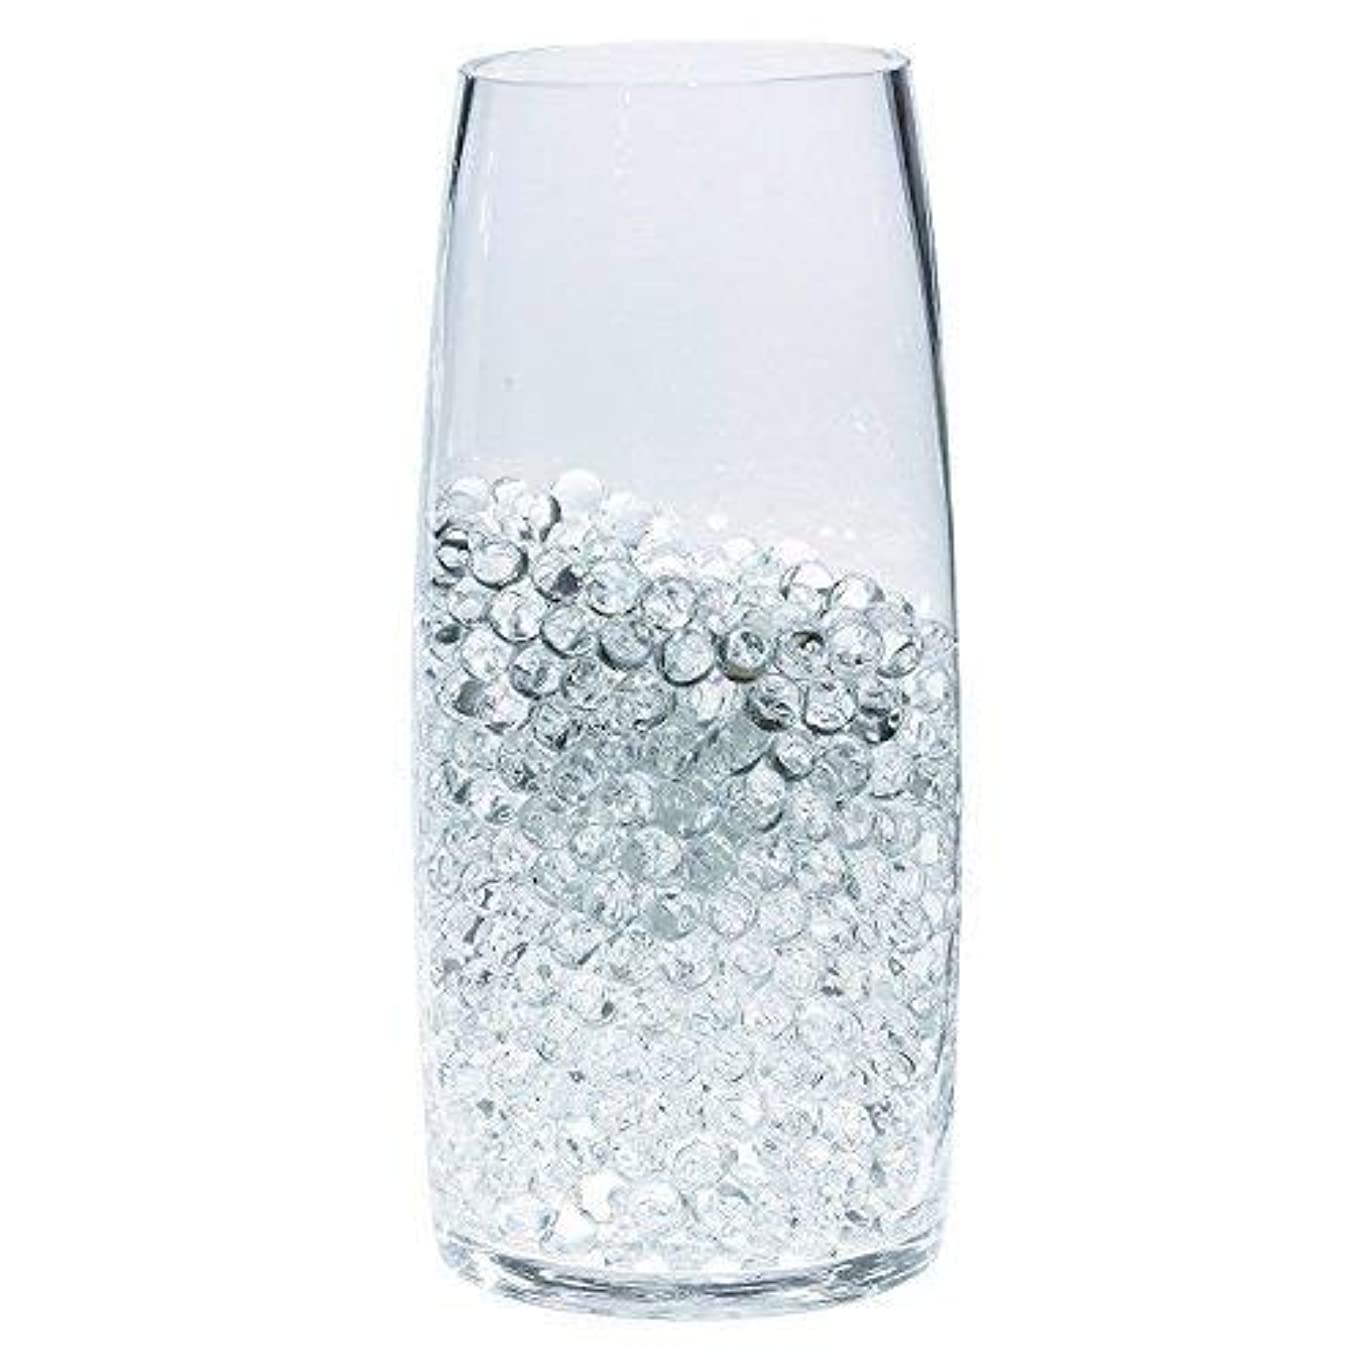 1 Pound Bag of Water Beads - Clear